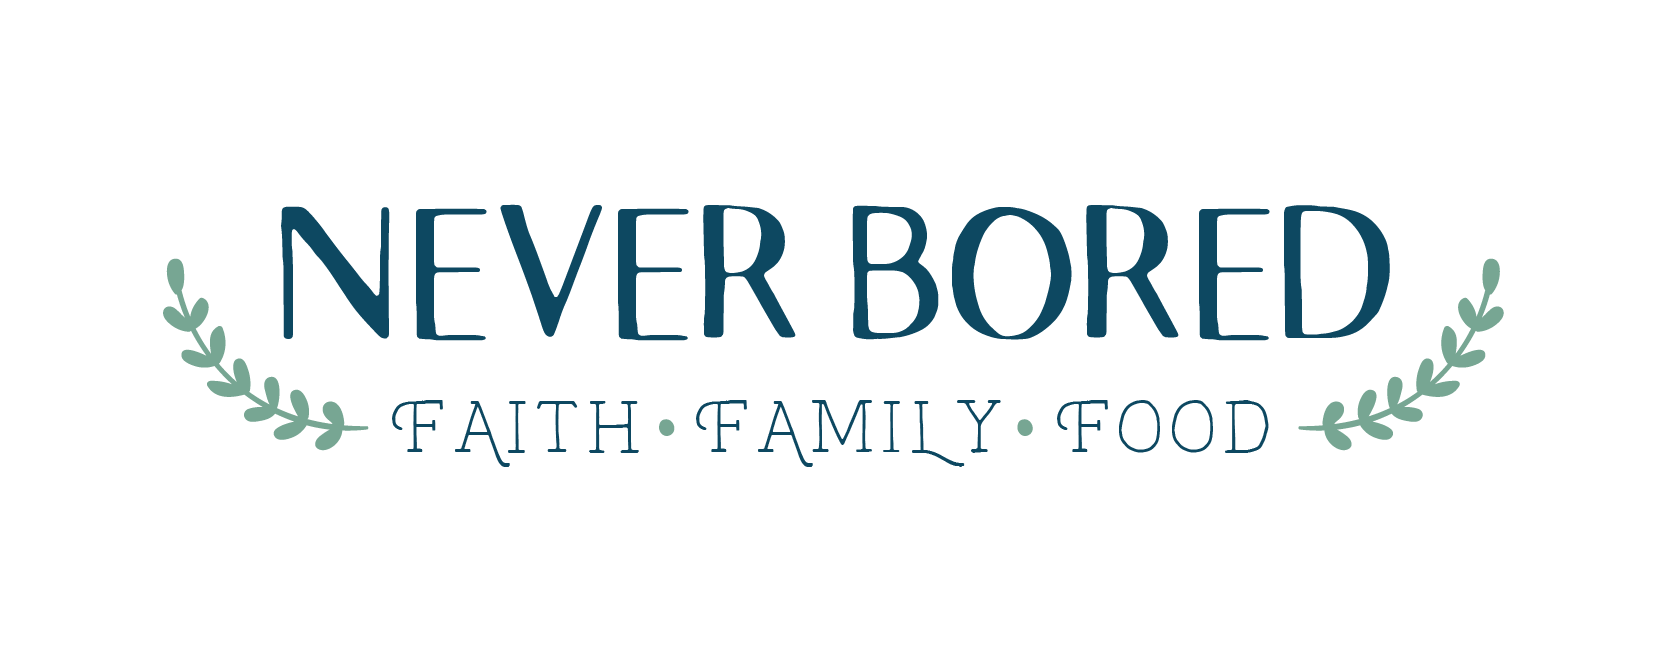 final never bored logo design